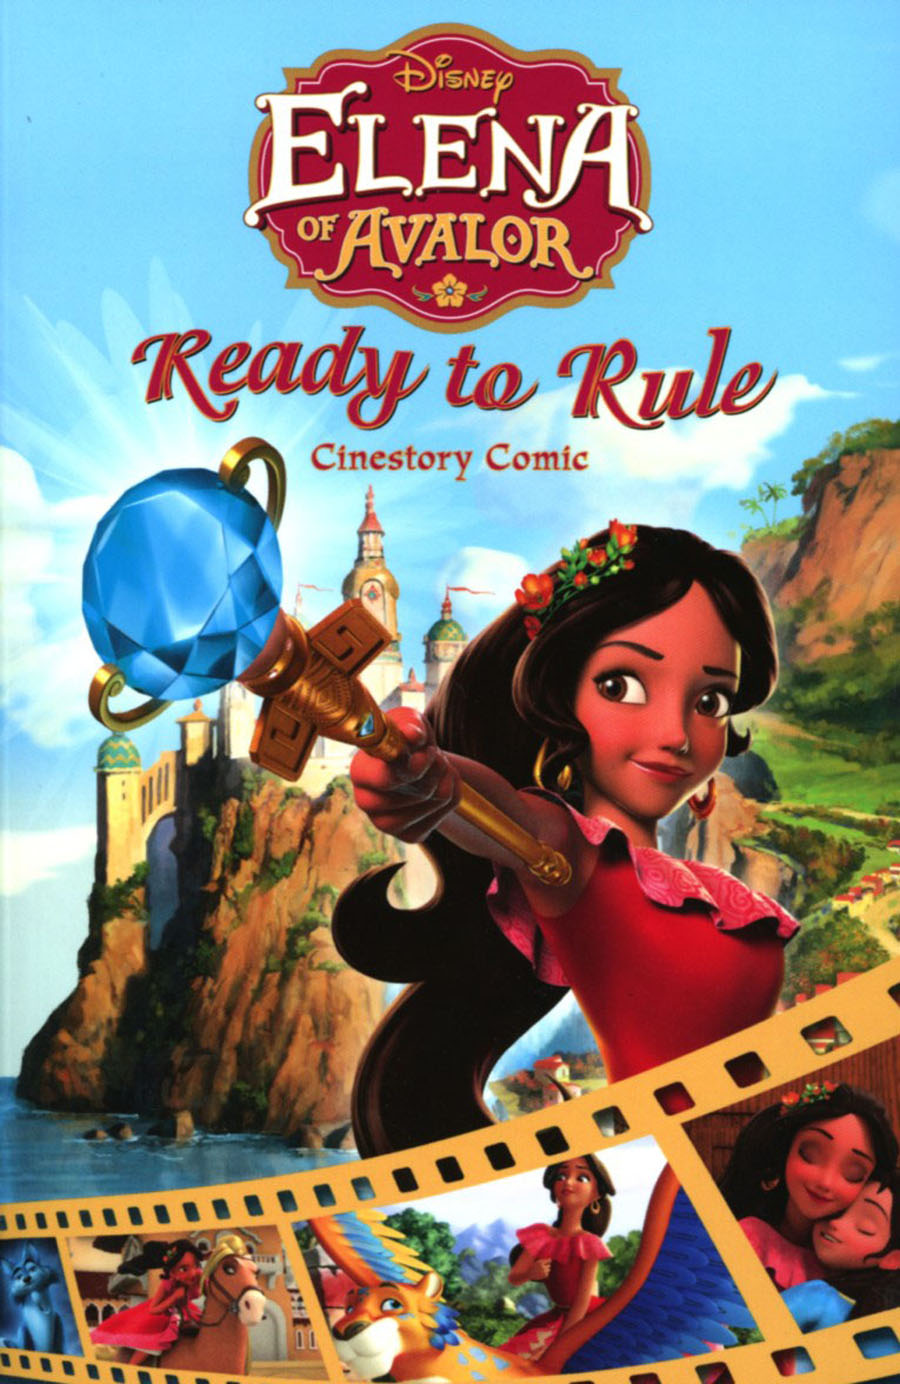 Disney Elena Of Avalor Ready To Rule Cinestory Comic TP